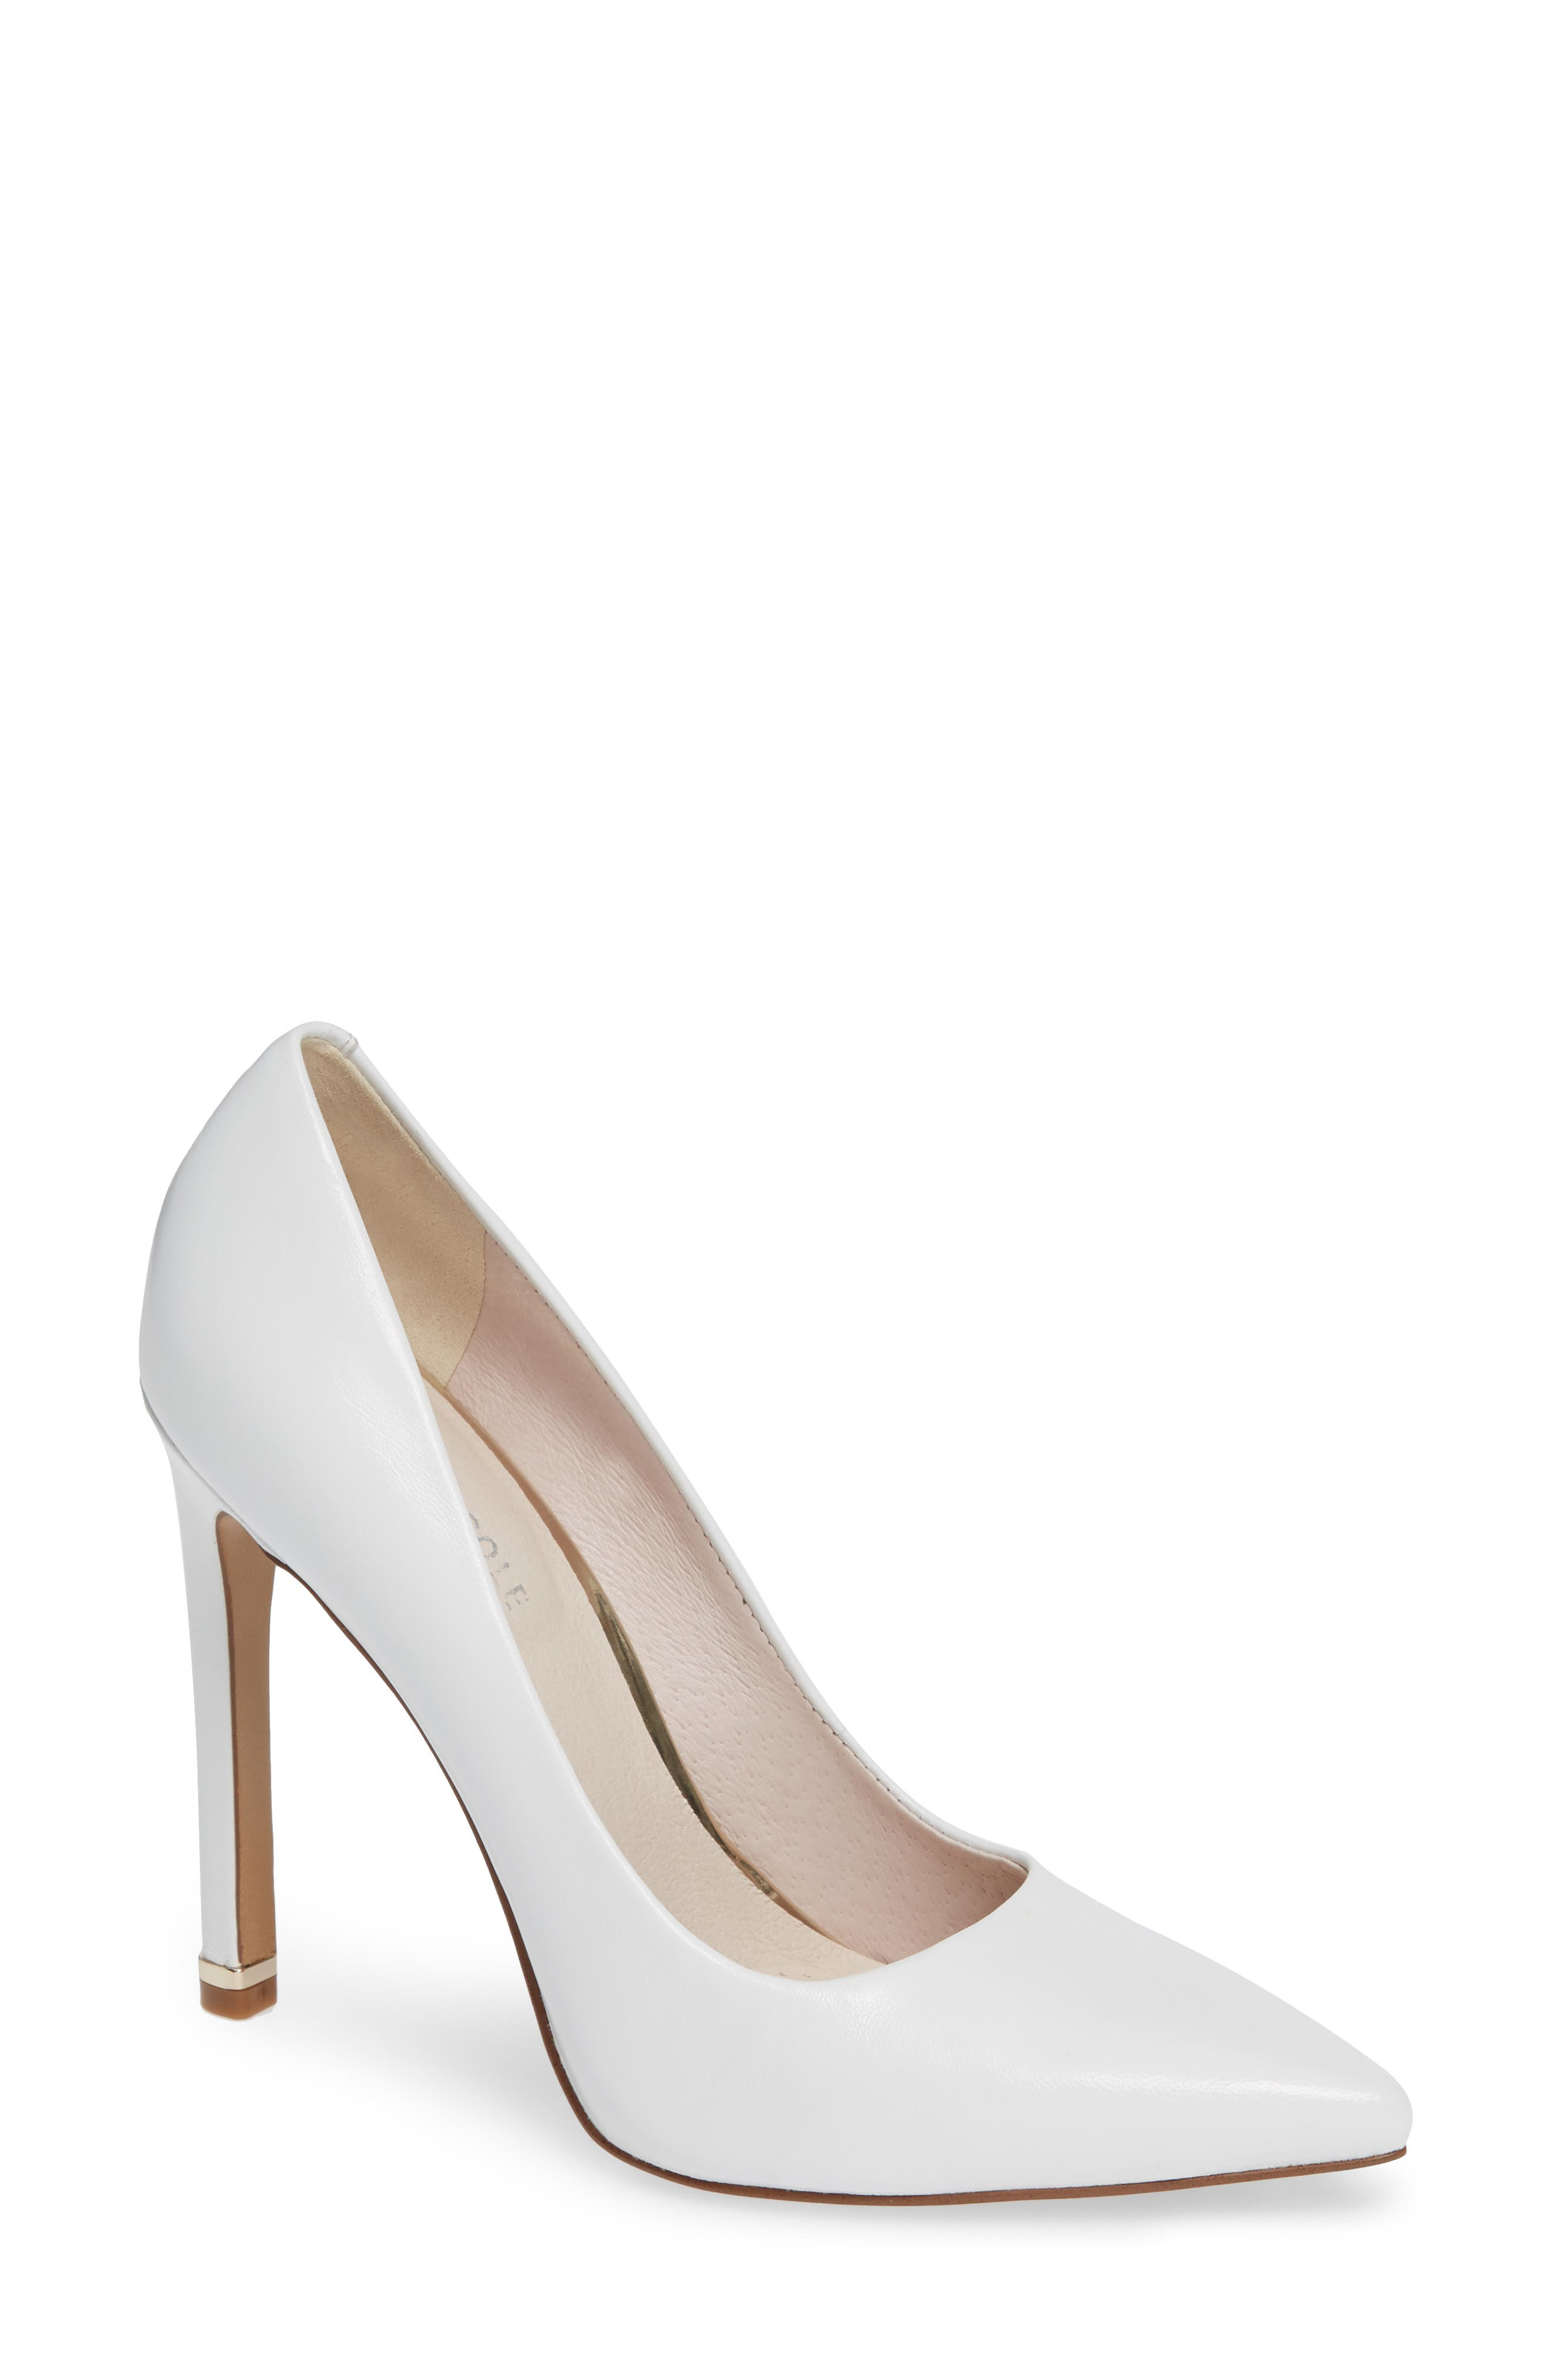 Riley 110 Pointy Toe Pump,                             Main thumbnail 1, color,                             WHITE LEATHER